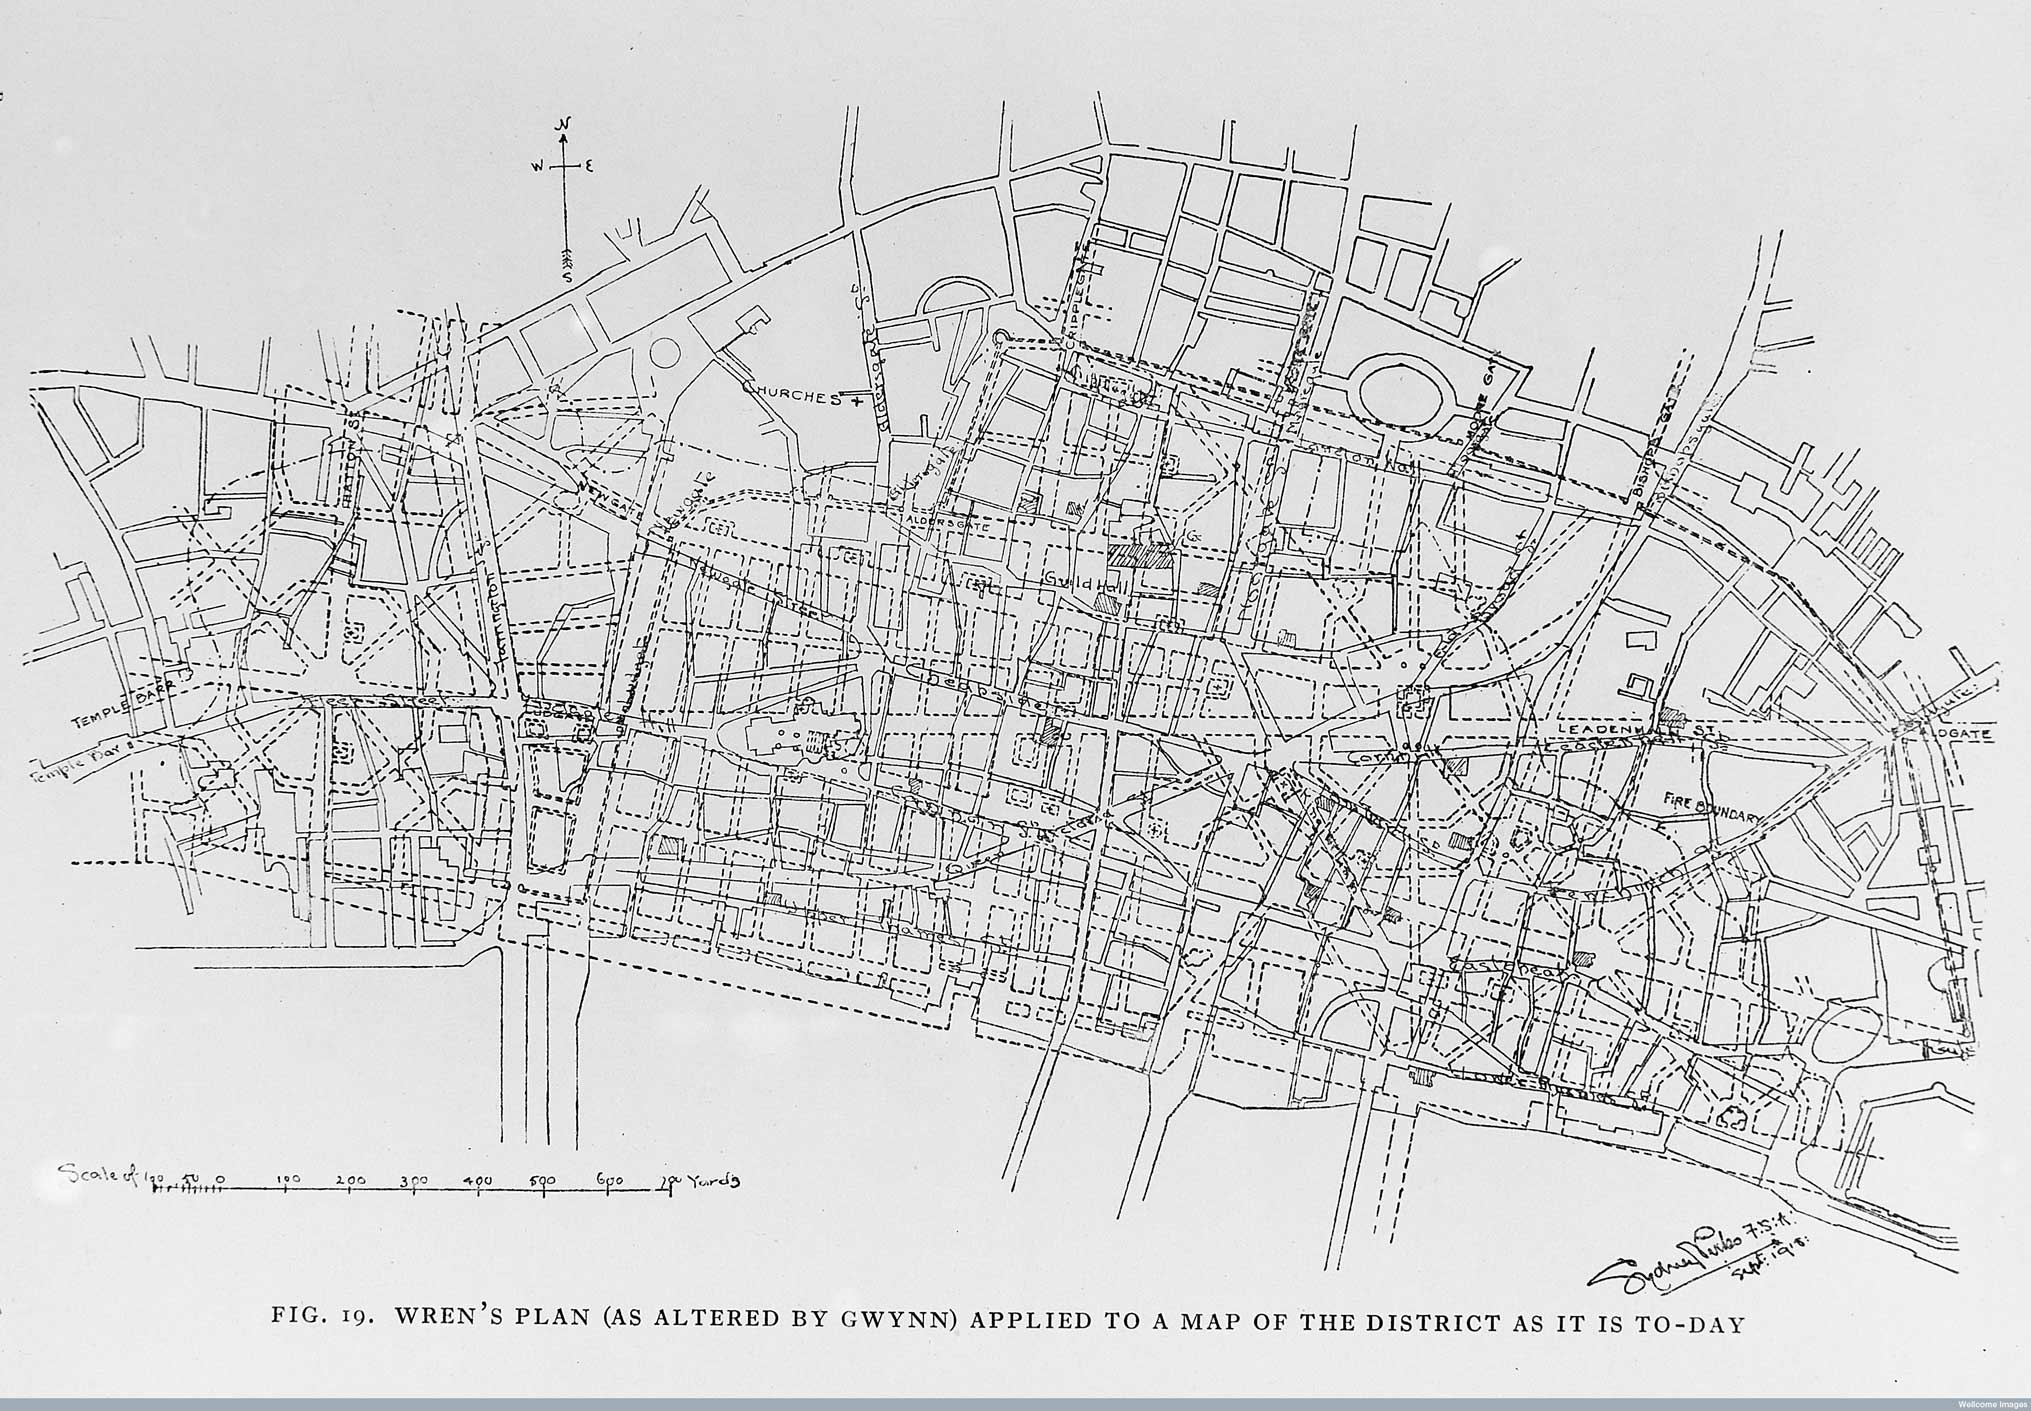 the map below published in 1845 by john haygarth shows the wren plan as dashed lines overlaid onto the victorian street network for the city of london